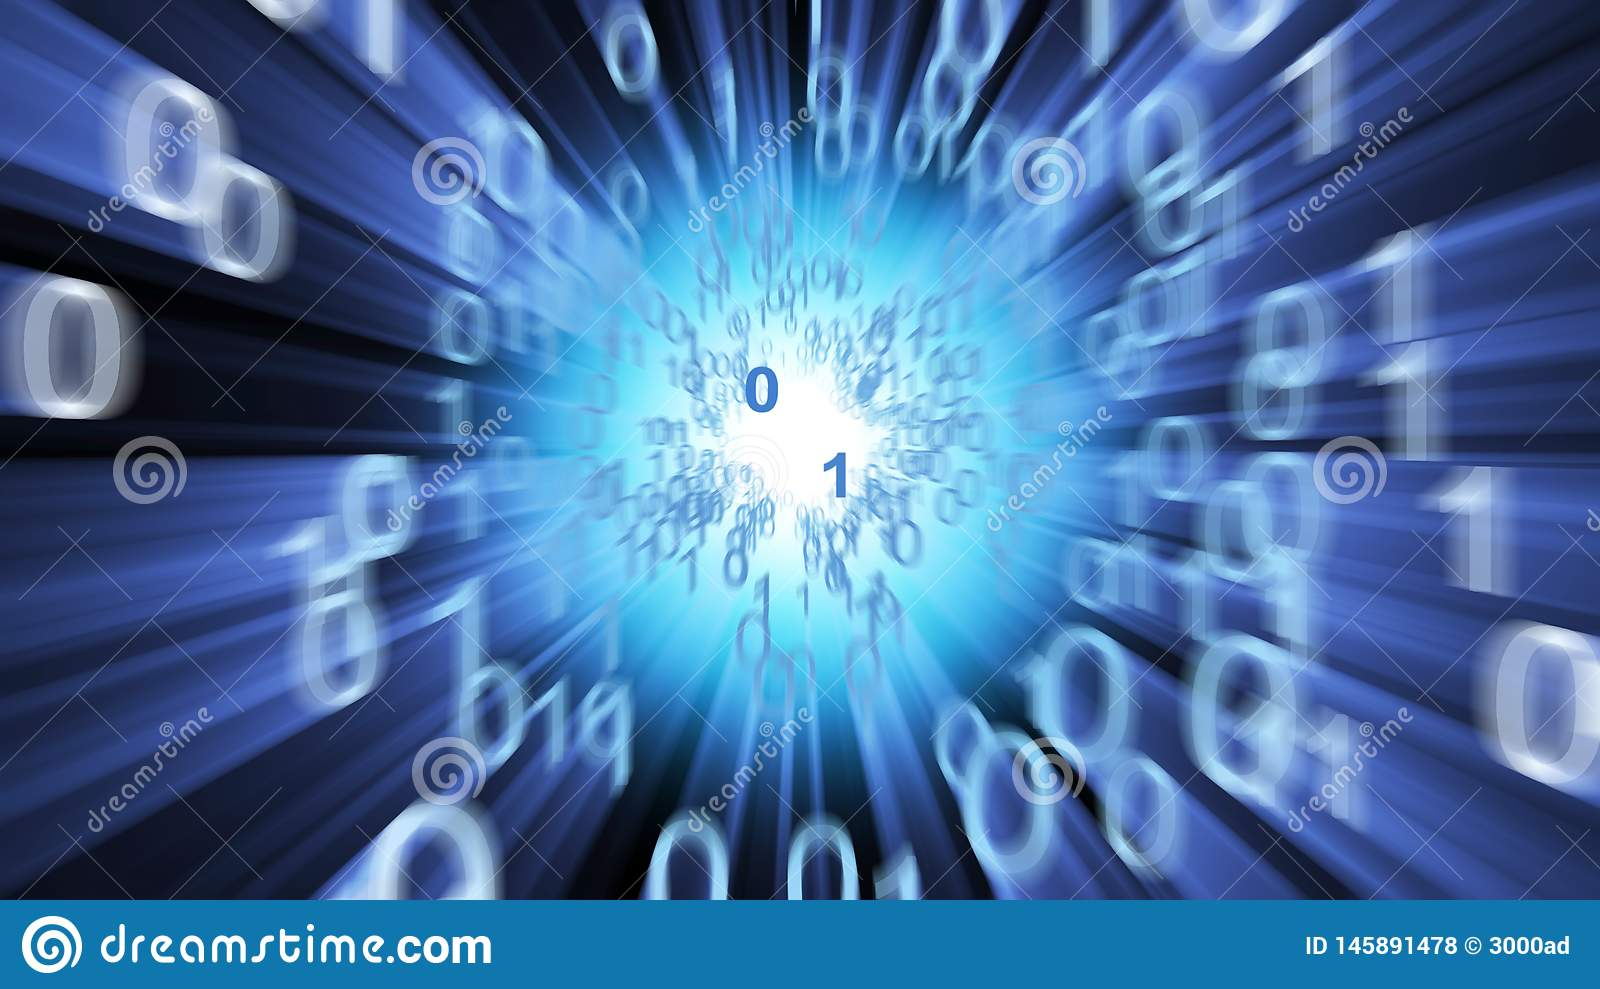 Binary data abstract with a cyberspace tunnel. 3D Illustration abstract background with zeros and ones emanating from a light source at the end of a cyberspace royalty free stock photos